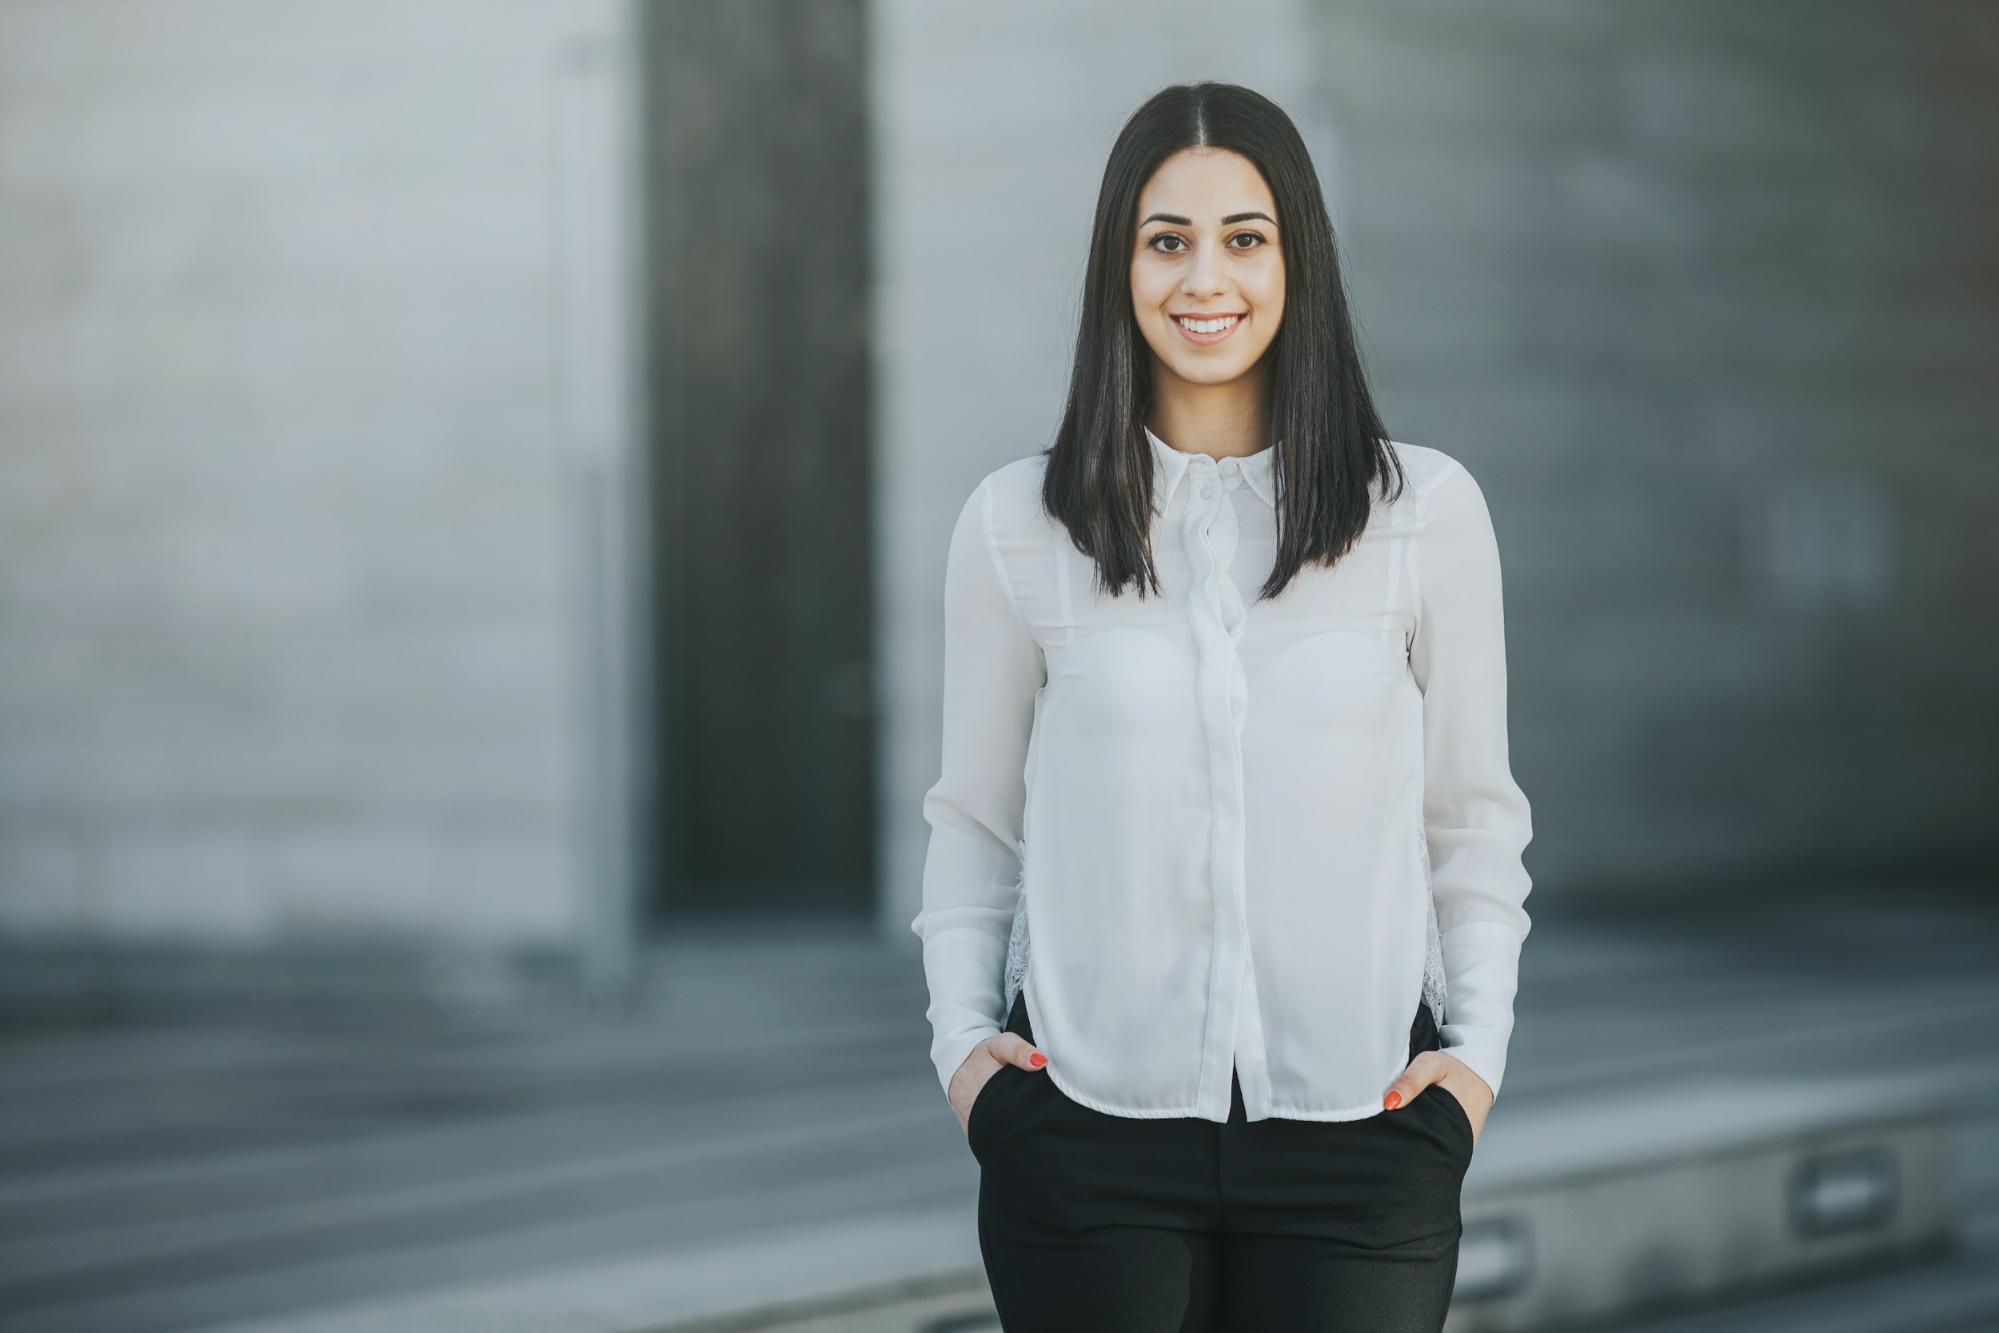 internships after graduation: Woman with her hands in her pockets and smiling at the camera